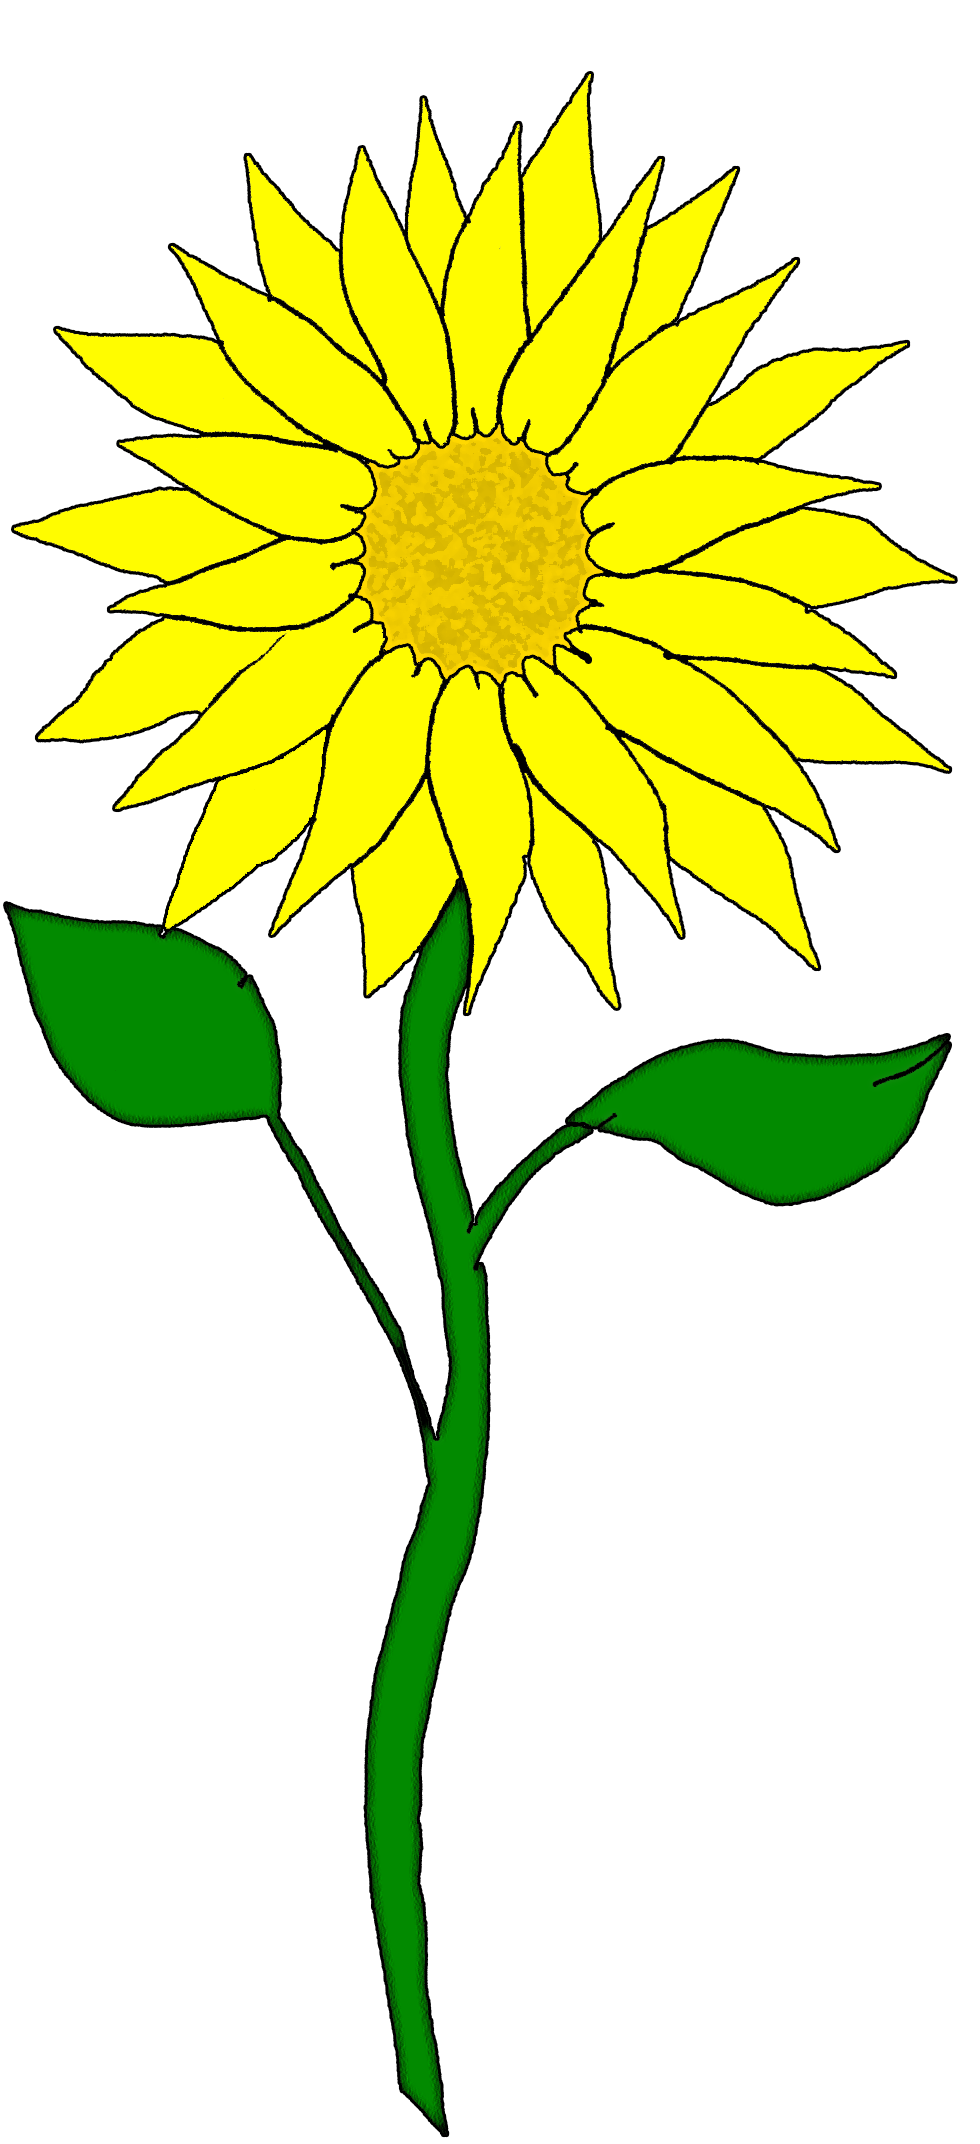 vector black and white Sprout clipart sunflower stem. Happy panda free images